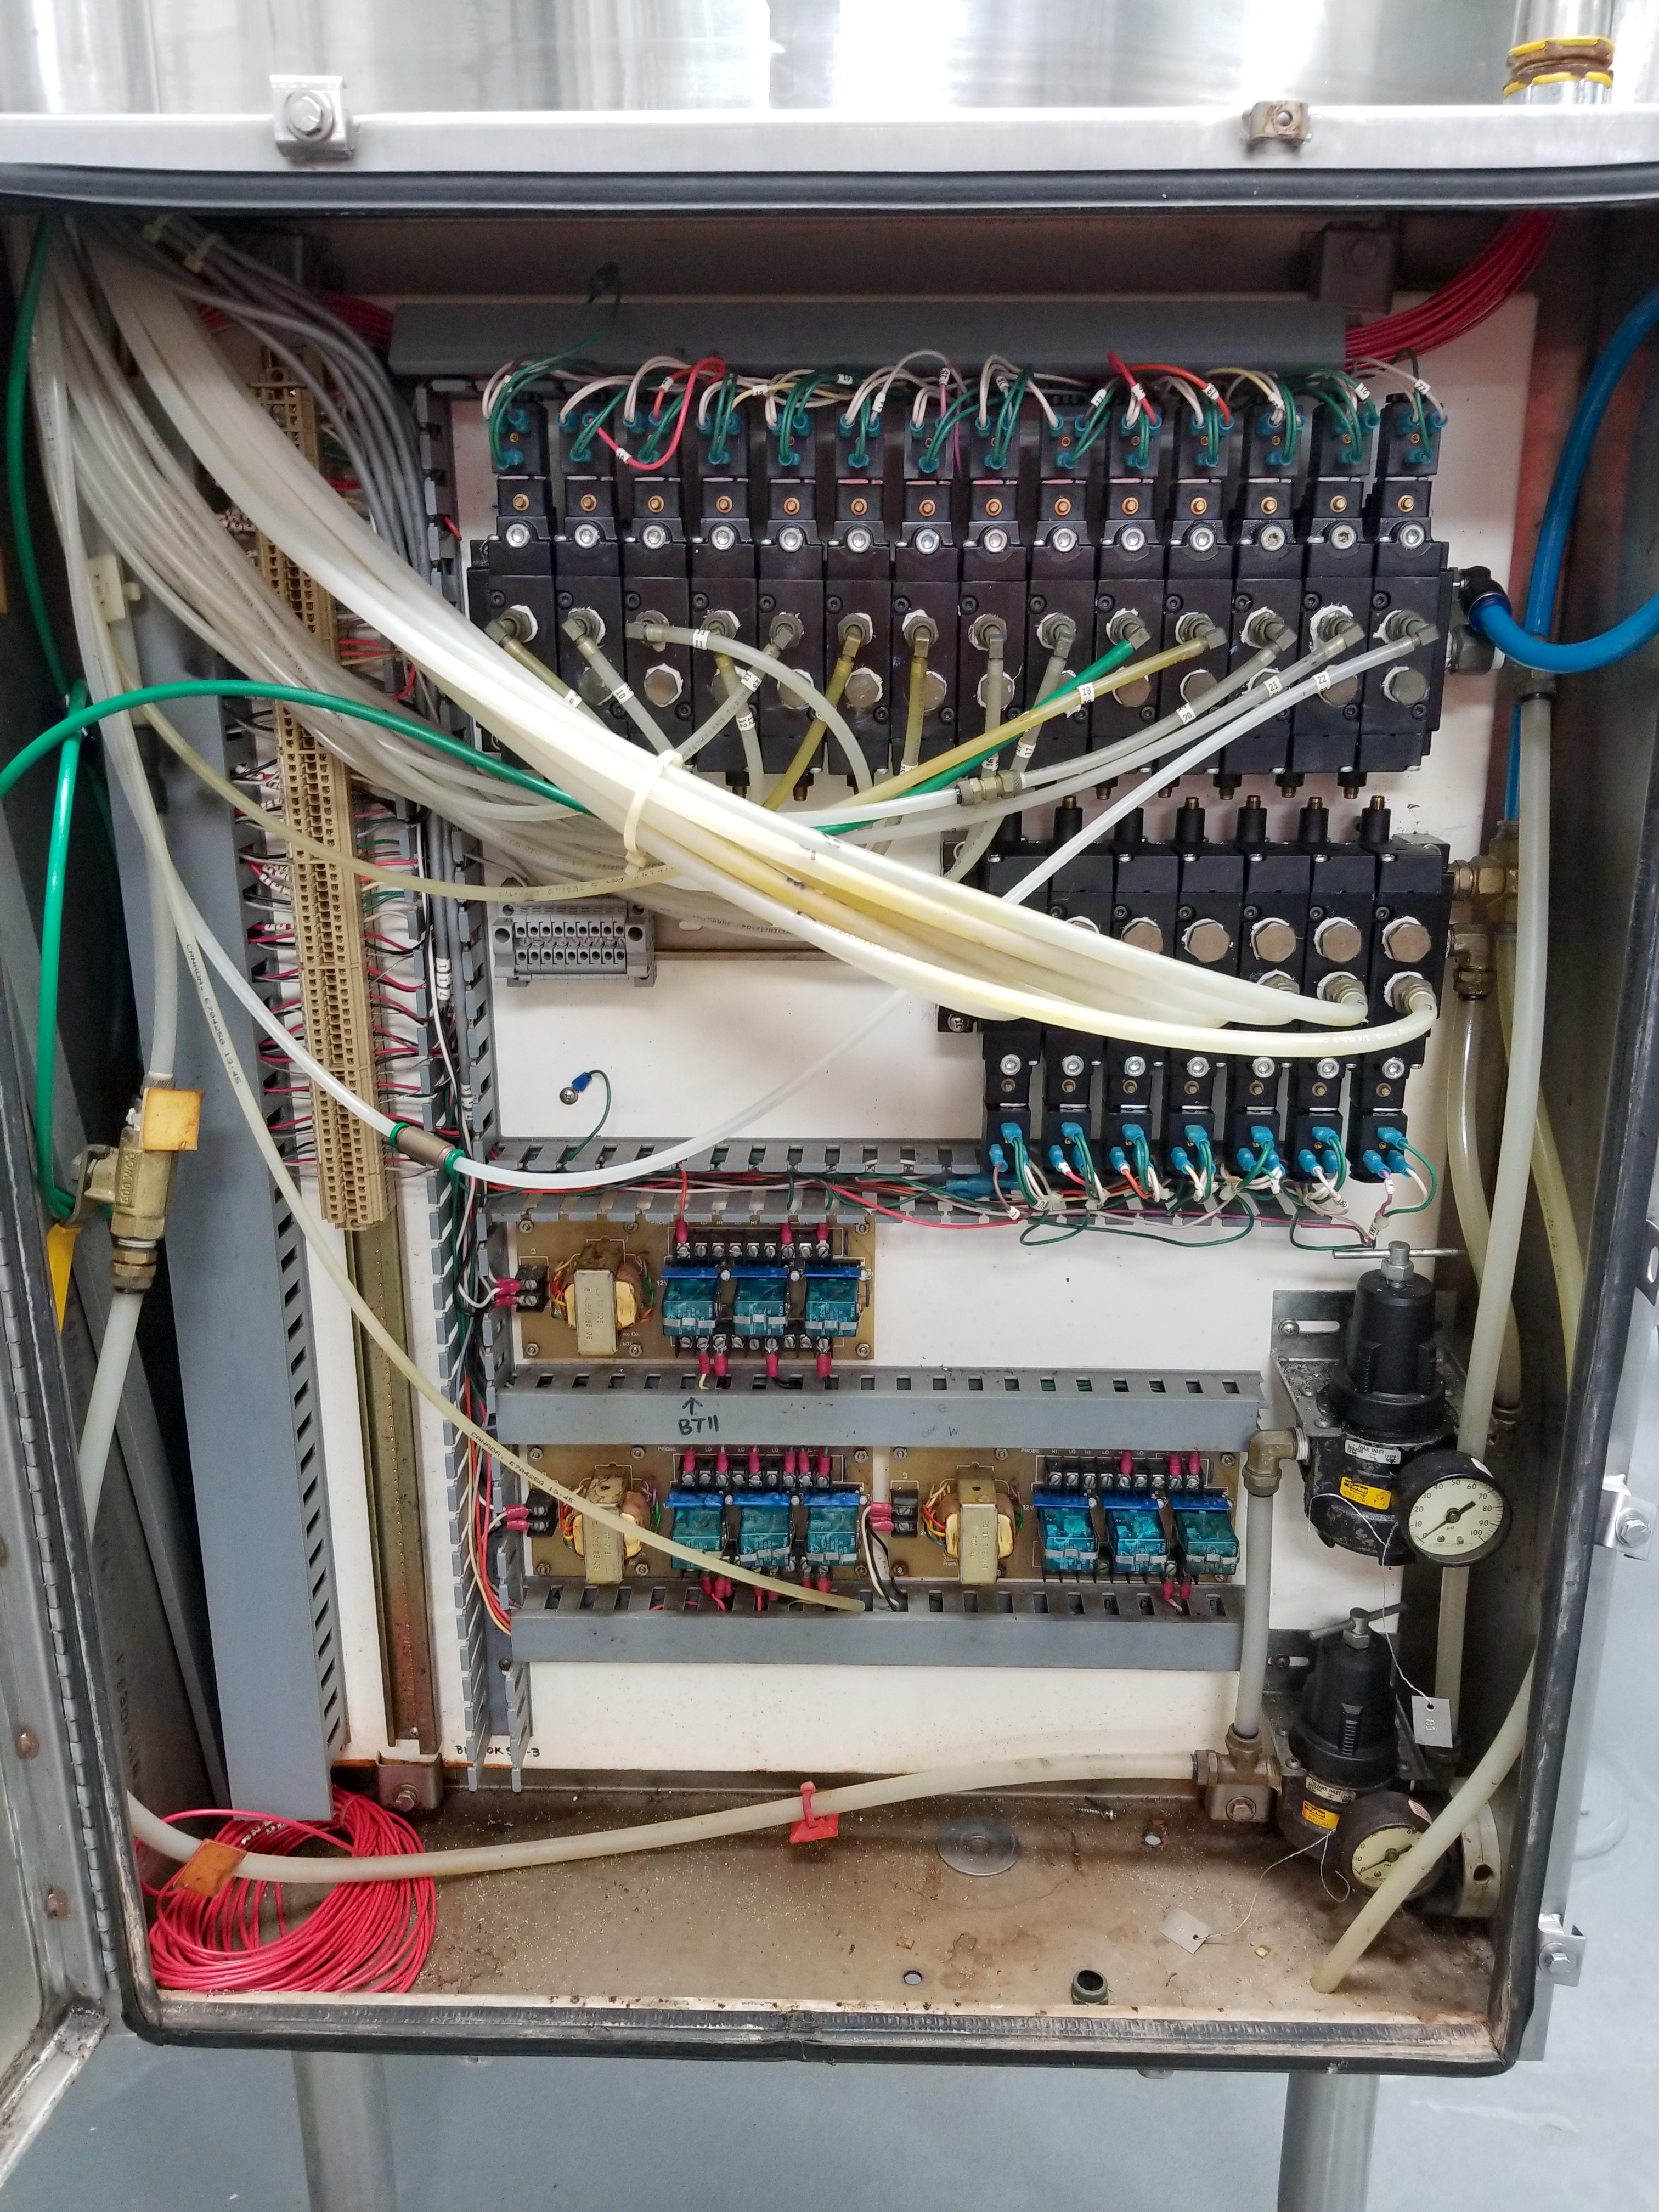 Stainless Steel Panel with Solenoids - Image 2 of 2